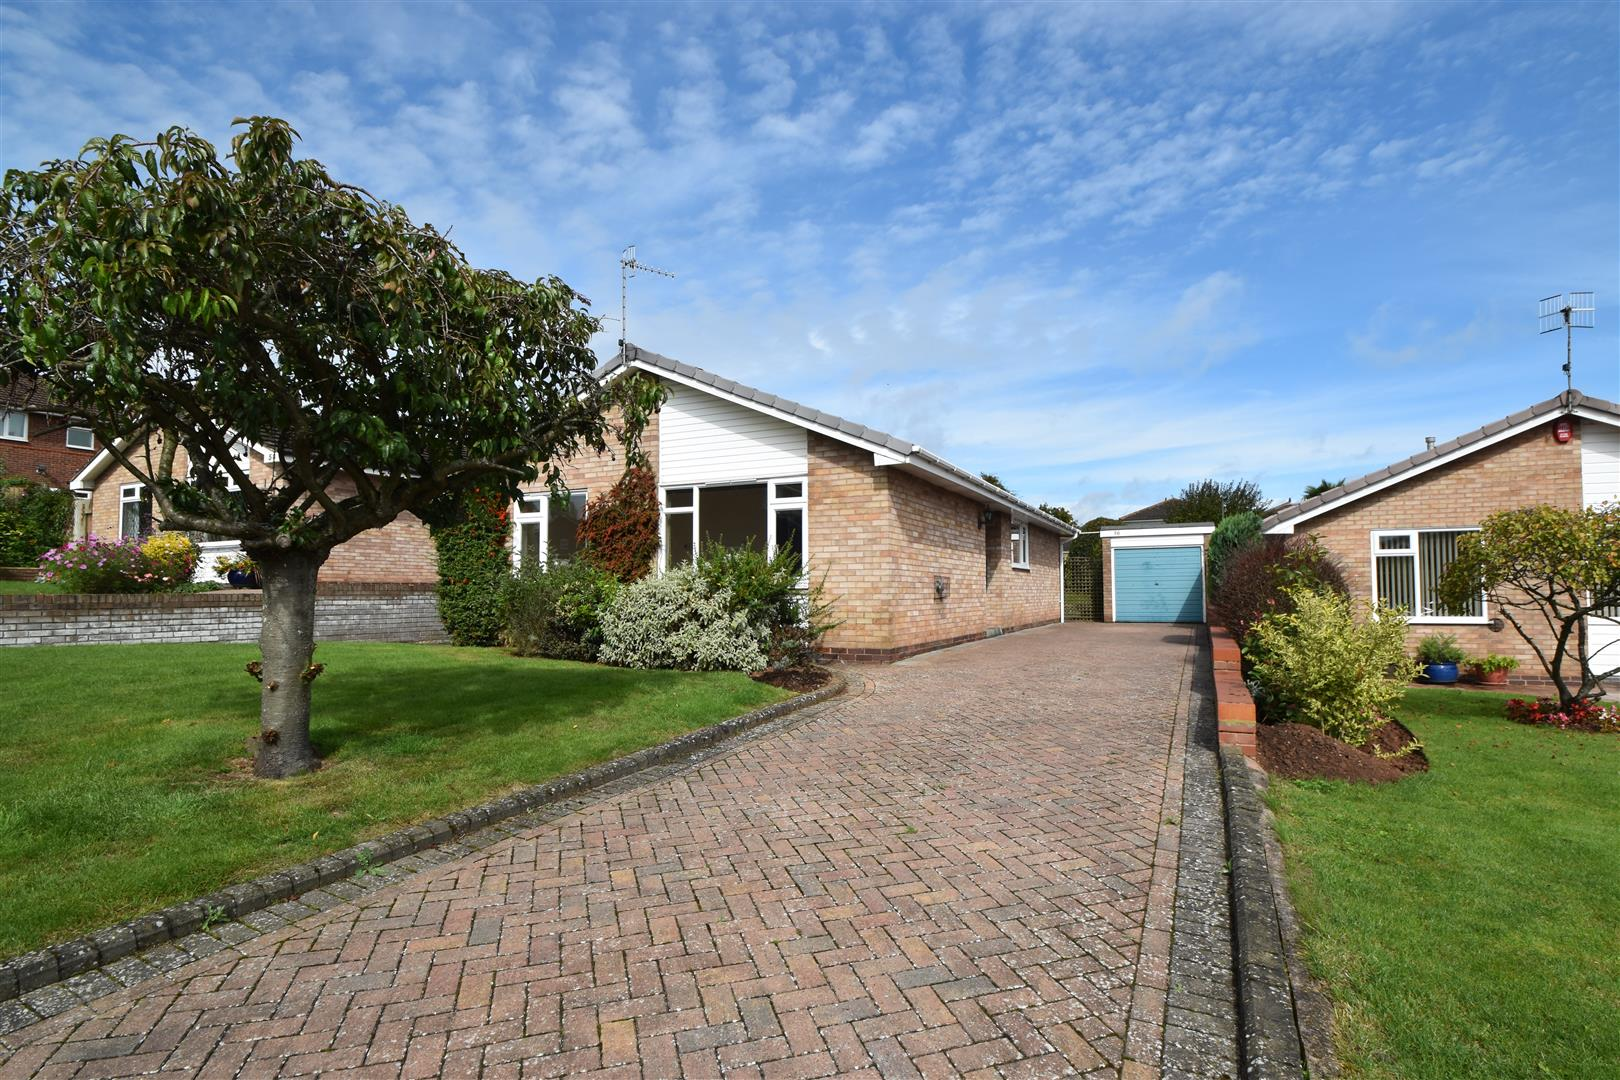 3 Bedrooms Detached Bungalow for sale in Shire Way, Droitwich